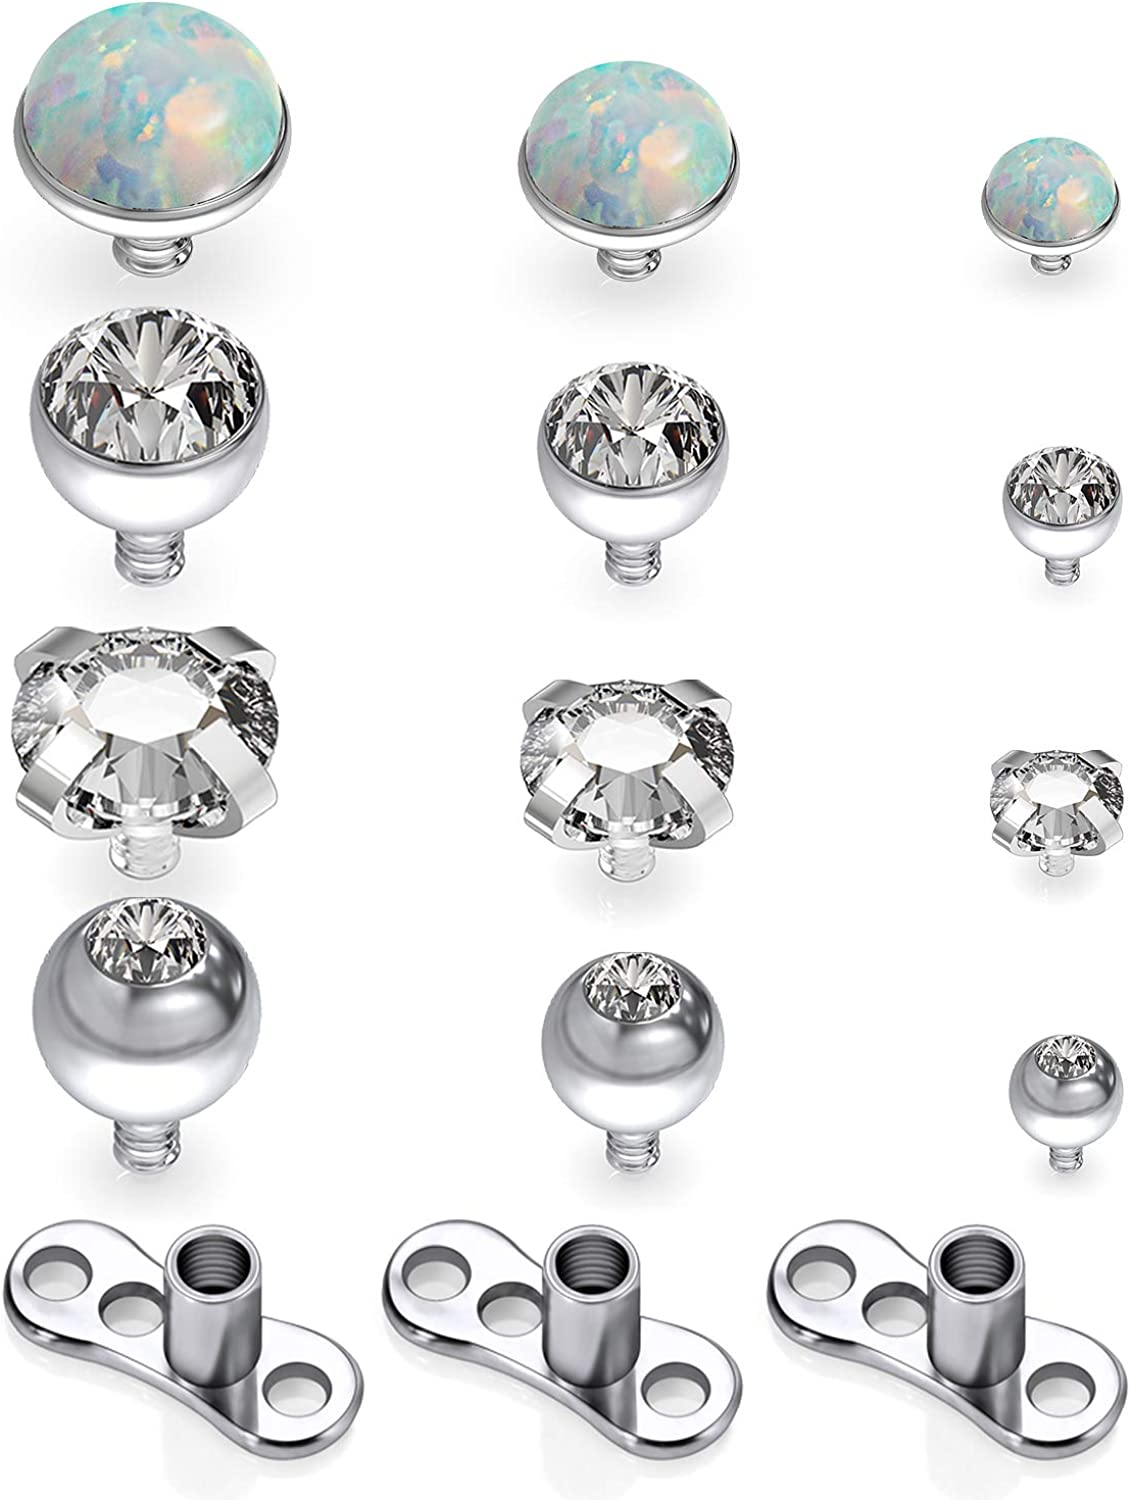 Leiainely Dermal Piercing Jewelry Dermal Tops Dermal Jewelry Dermal Top 14 Gauge Dermal Anchor Replacement Microdermals Titanium Base and Surgical Steel Tops with Gem Body Surface Piercing Jewelry